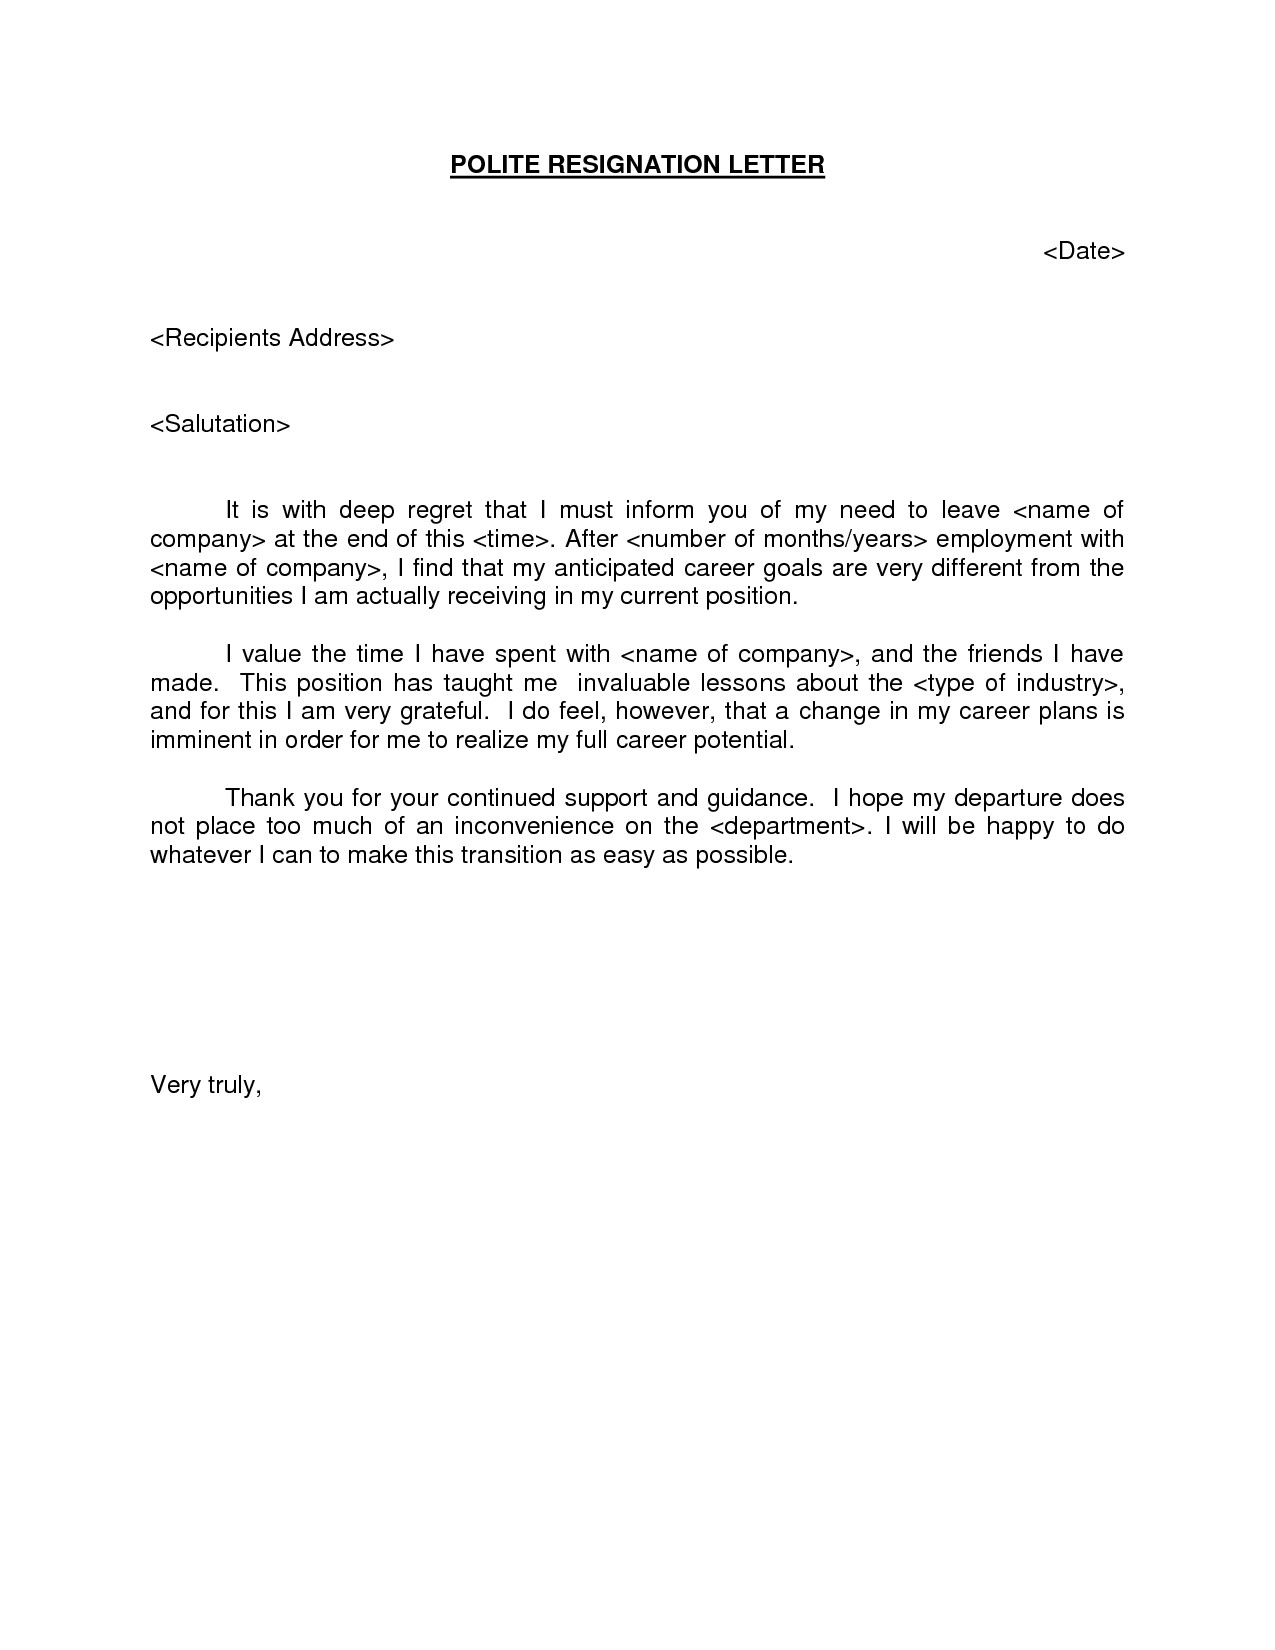 I Want to Buy Your House Letter Template - I Want to Buy Your House Letter Template Fantastic Polite